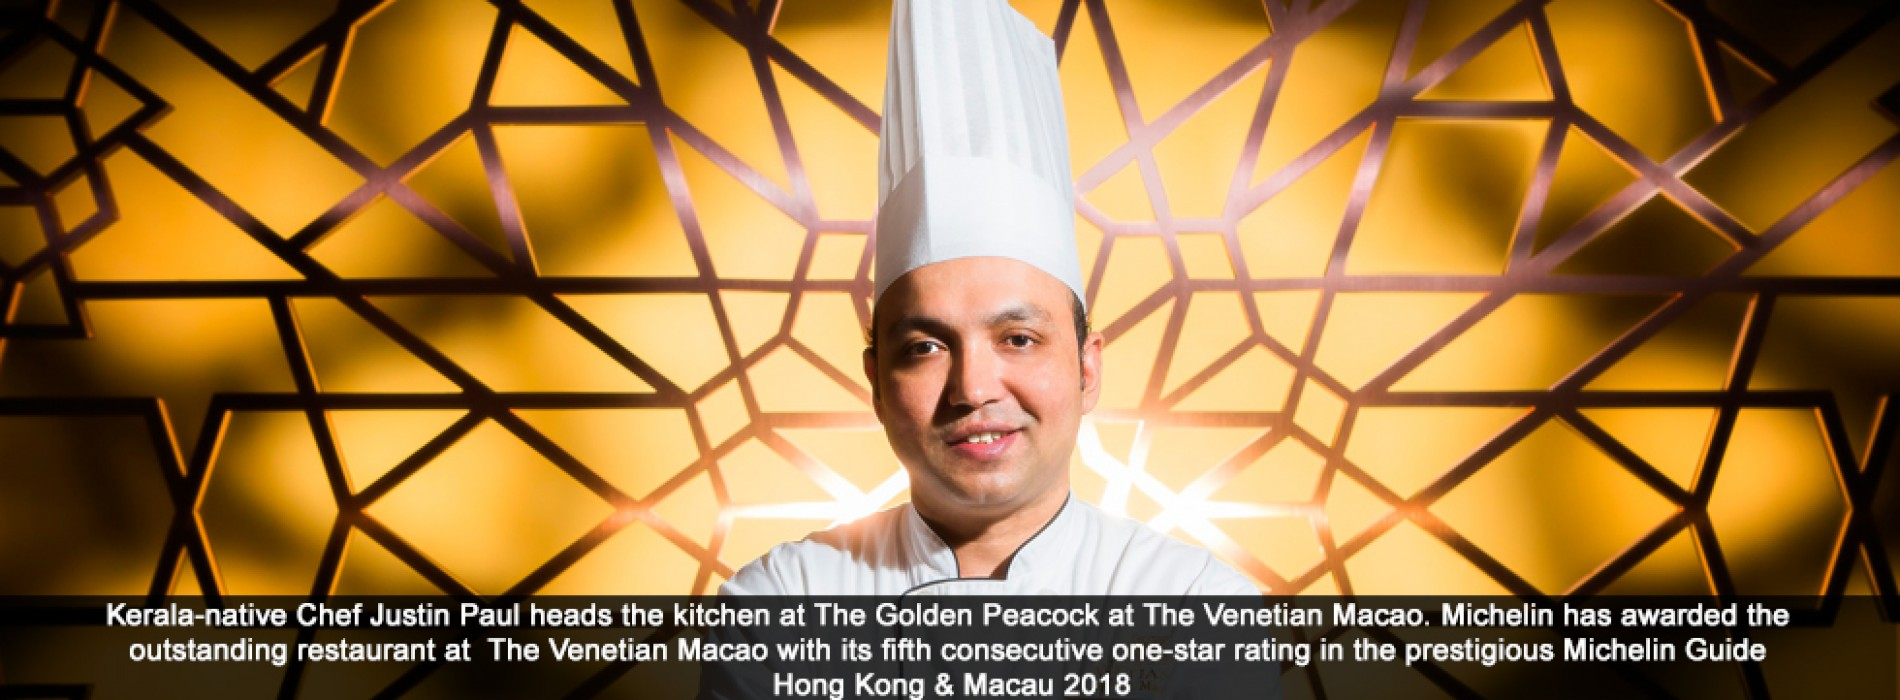 The Golden Peacock at The Venetian Macao Awards Michelin Star for fifth straight year